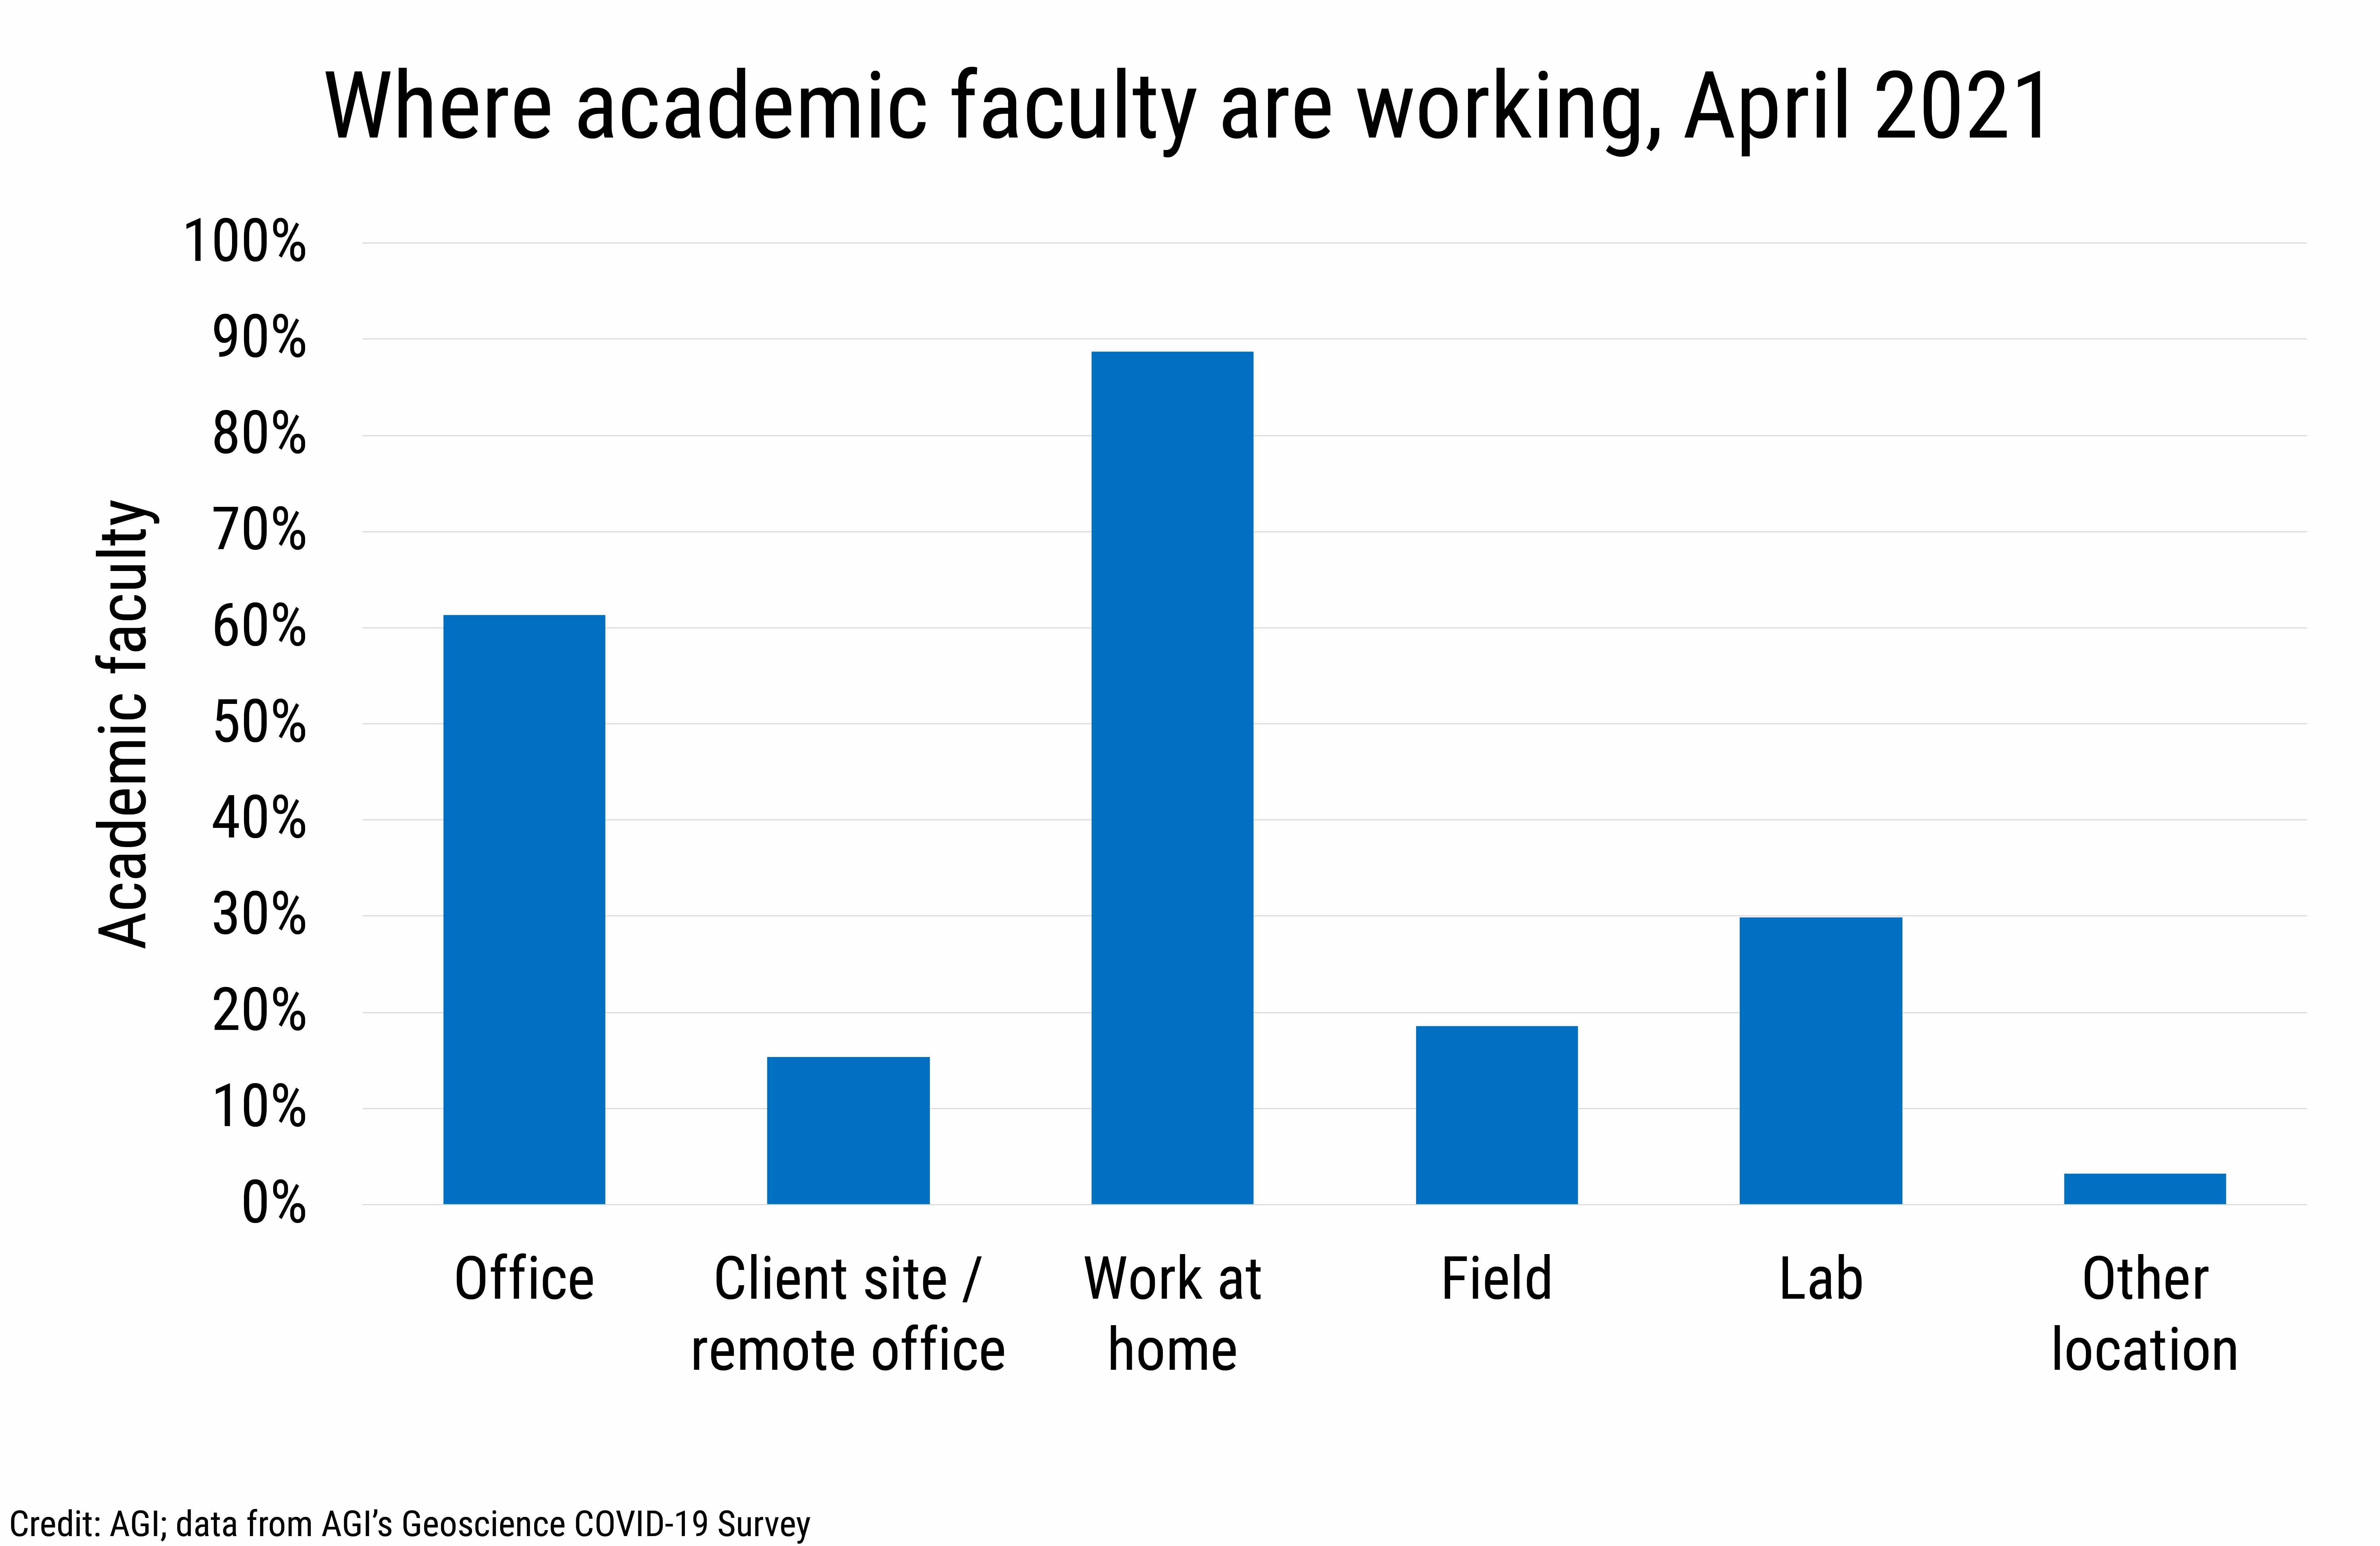 DB_2021-014 chart 05: Where academic faculty are working, April 2021 (Credit: AGI; data from AGI's Geoscience COVID-19 Survey)